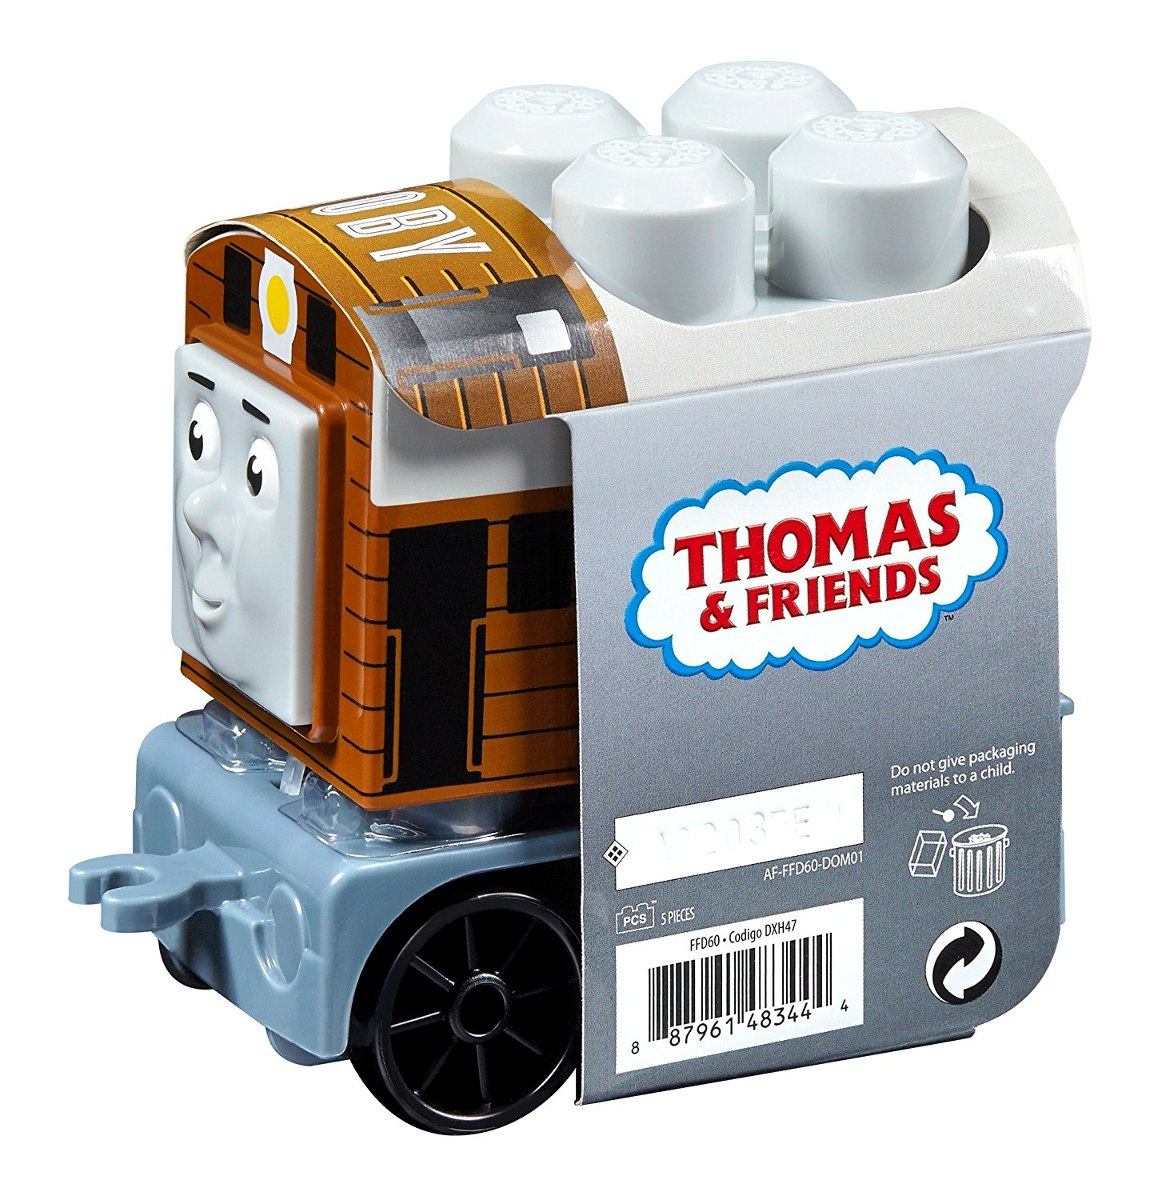 Juegos De Construir Vias De Trenes Mega Bloks Thomas And Friends Toby Kit De Construcción